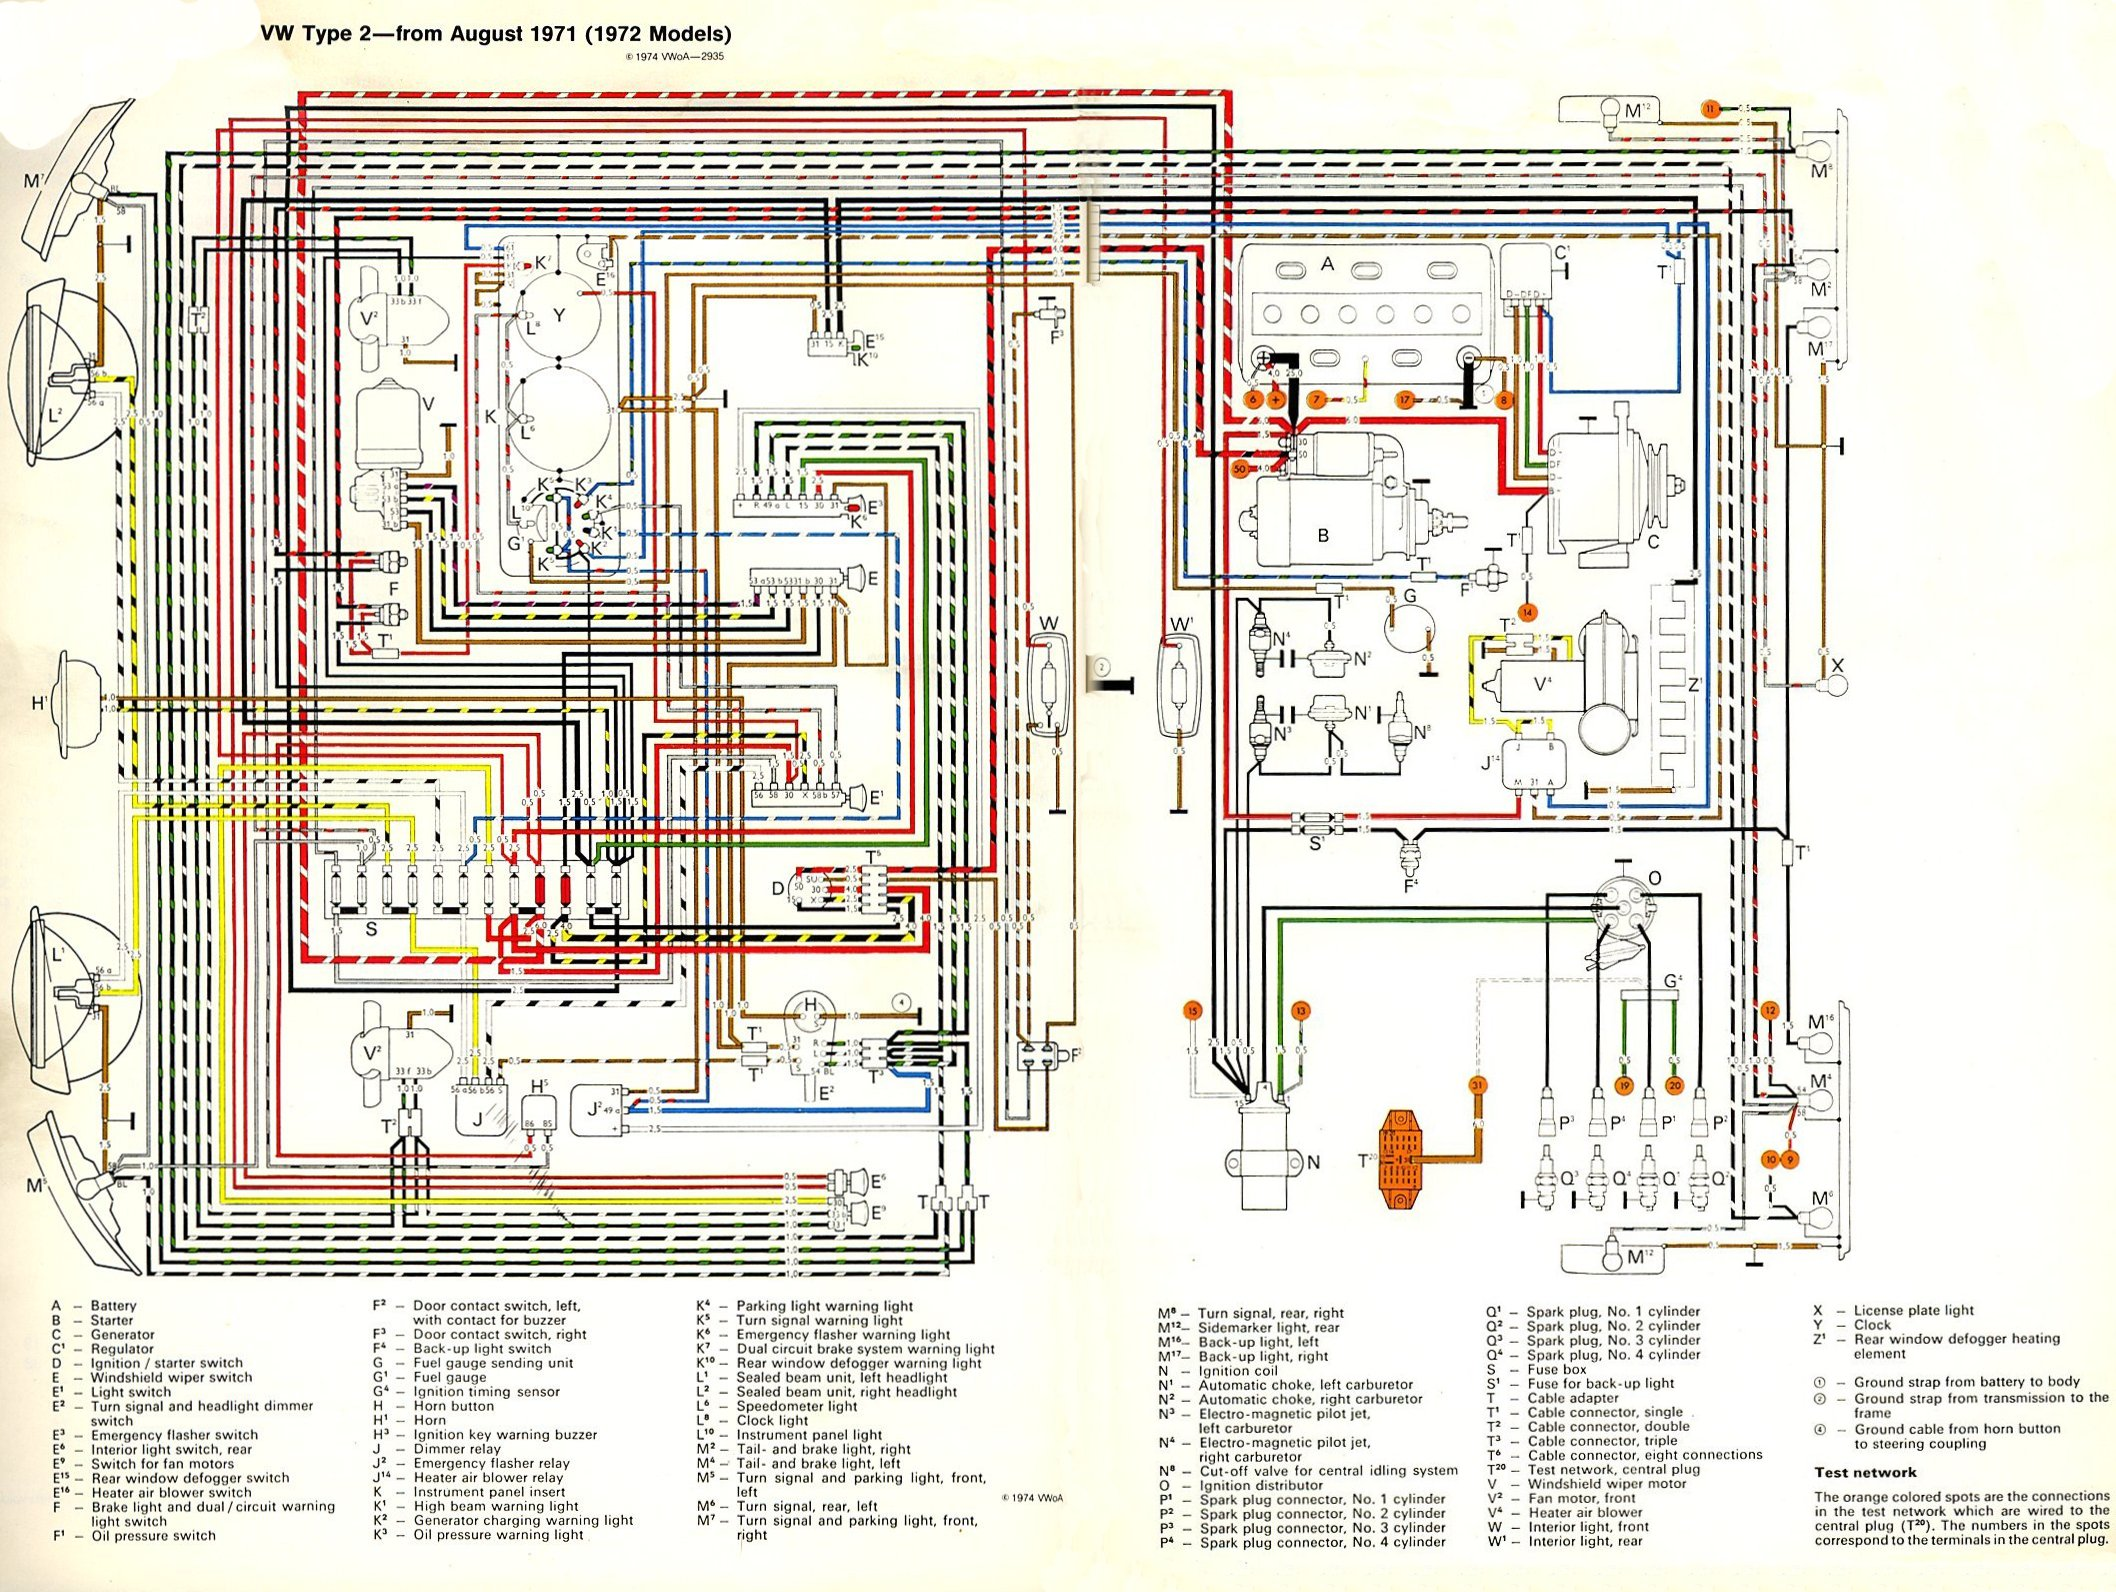 bus_1972_wiring 1972 corvette wiring diagram 1972 corvette ac wiring diagram Wiring Harness Diagram at creativeand.co